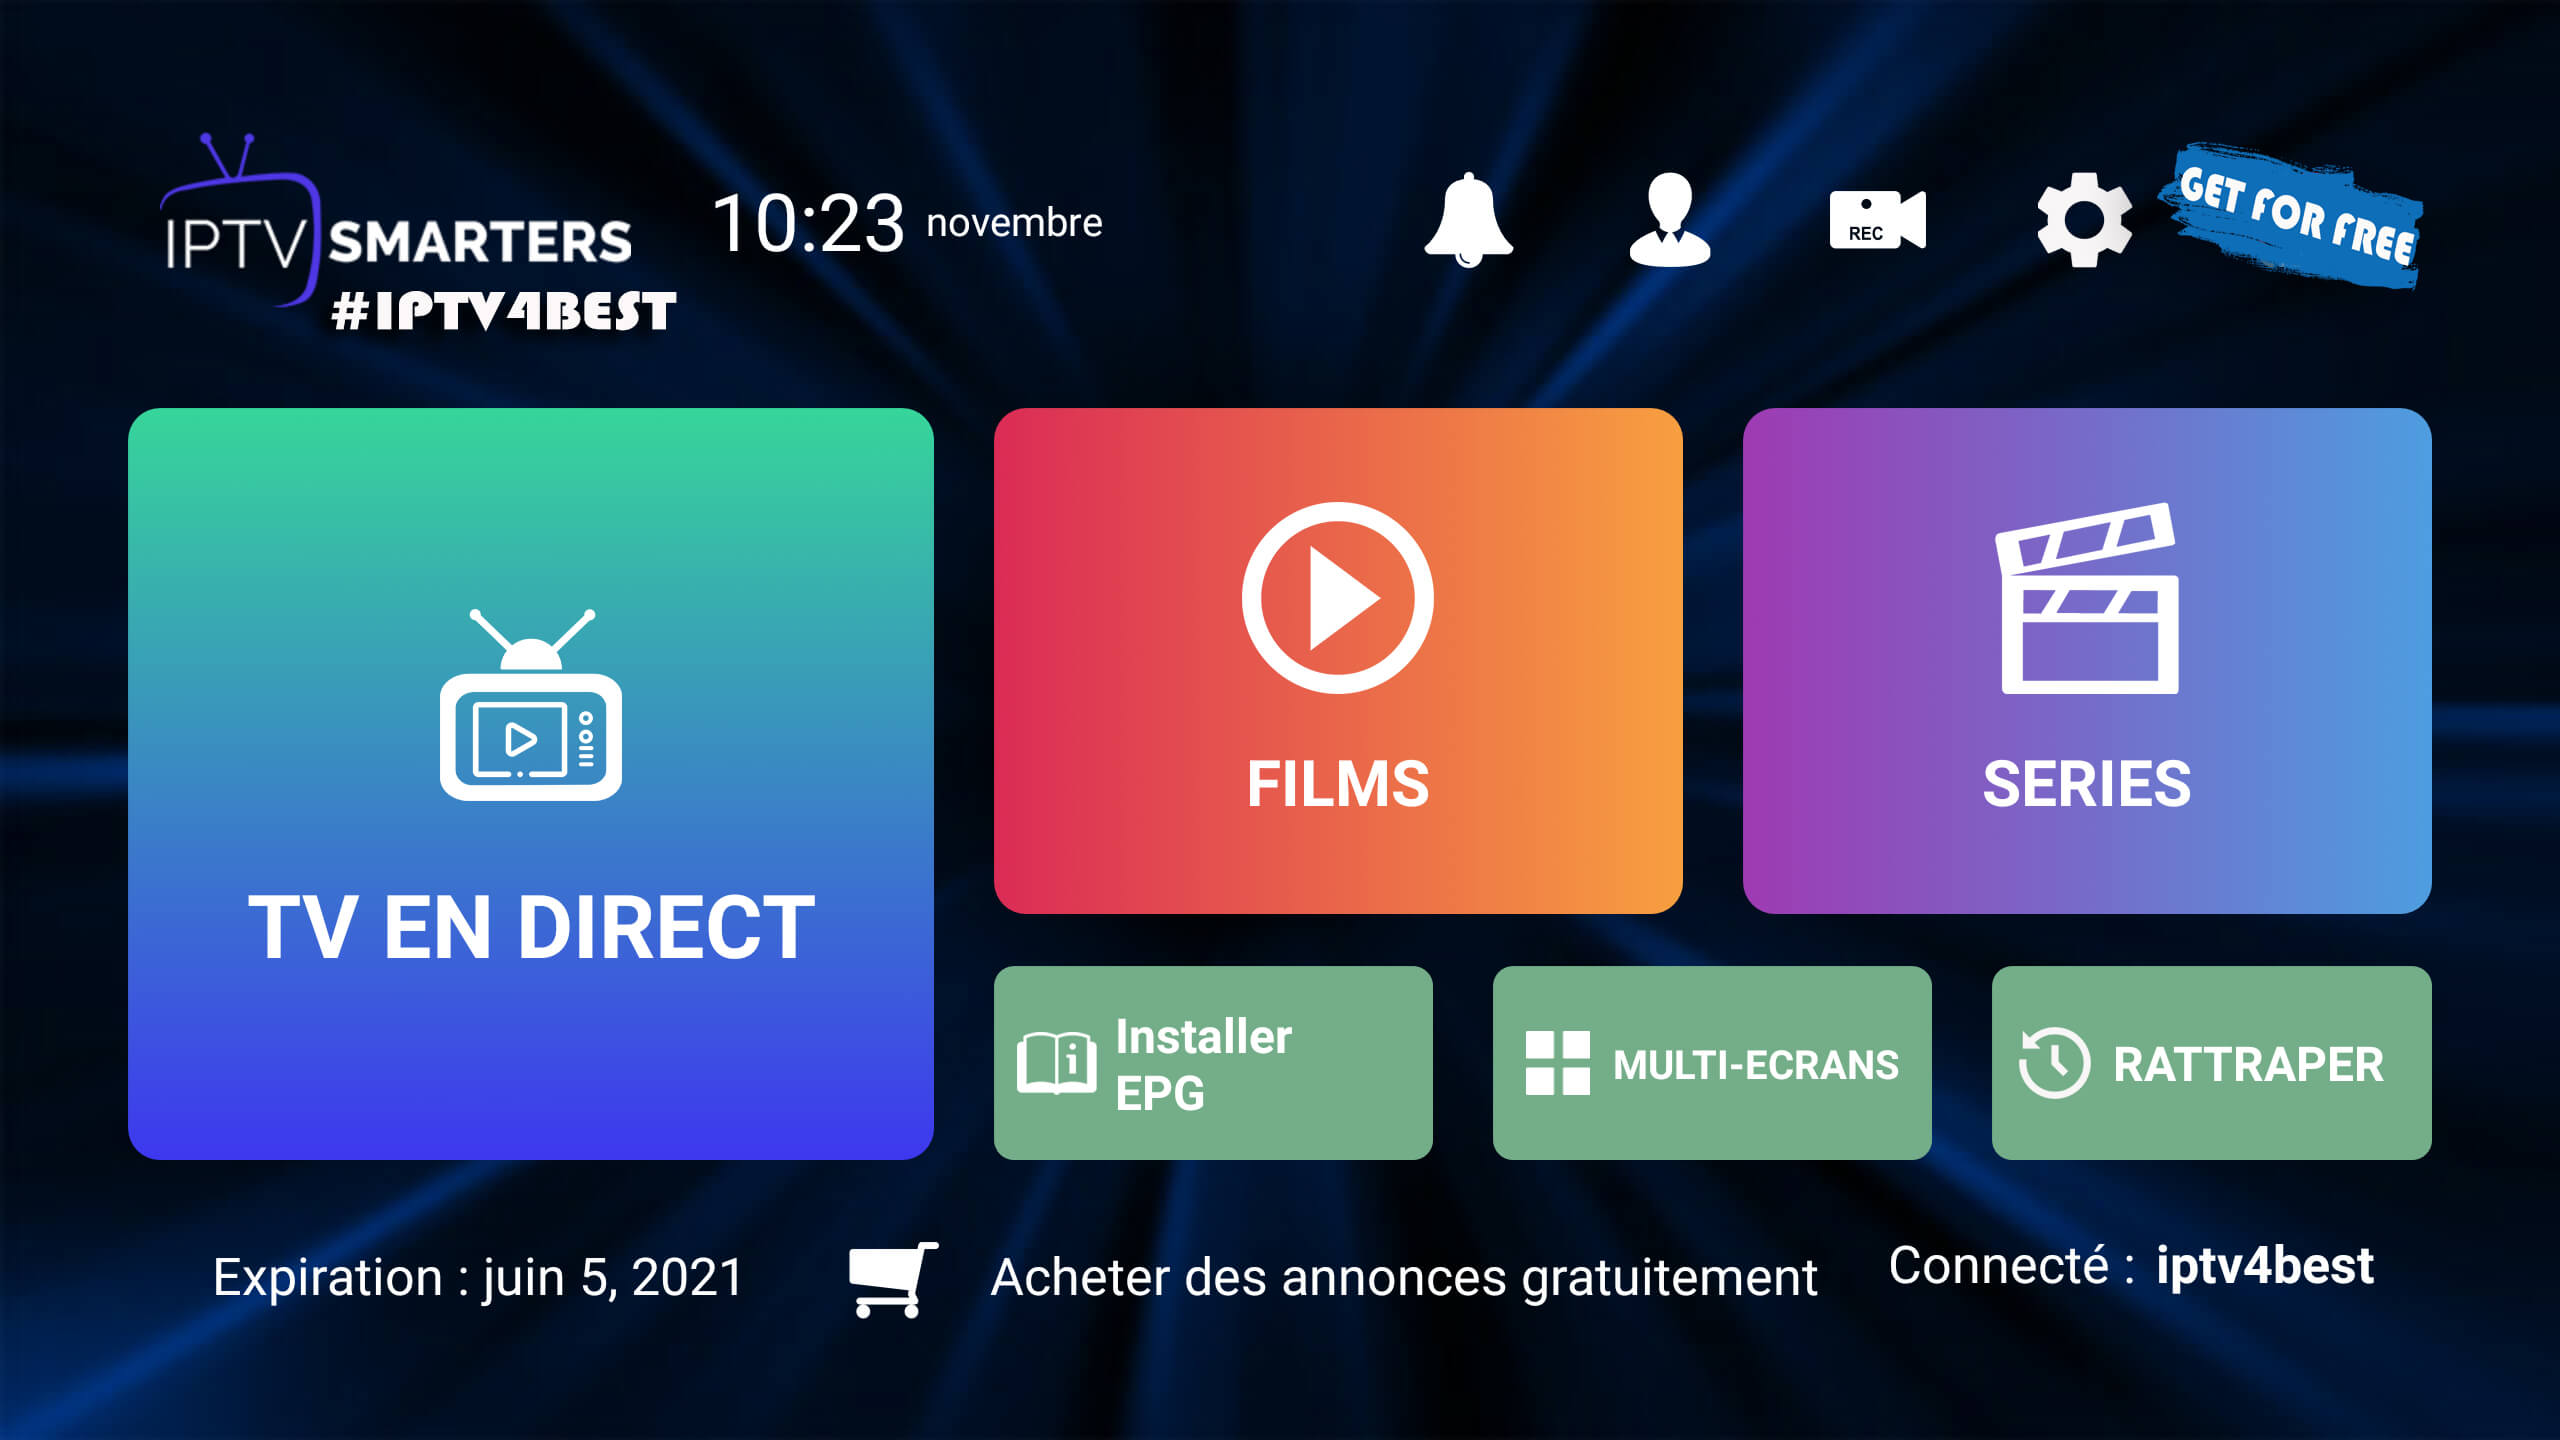 IPTv Smarters Pro APK + Code Activation Expire 2021 By IPTV4BEST